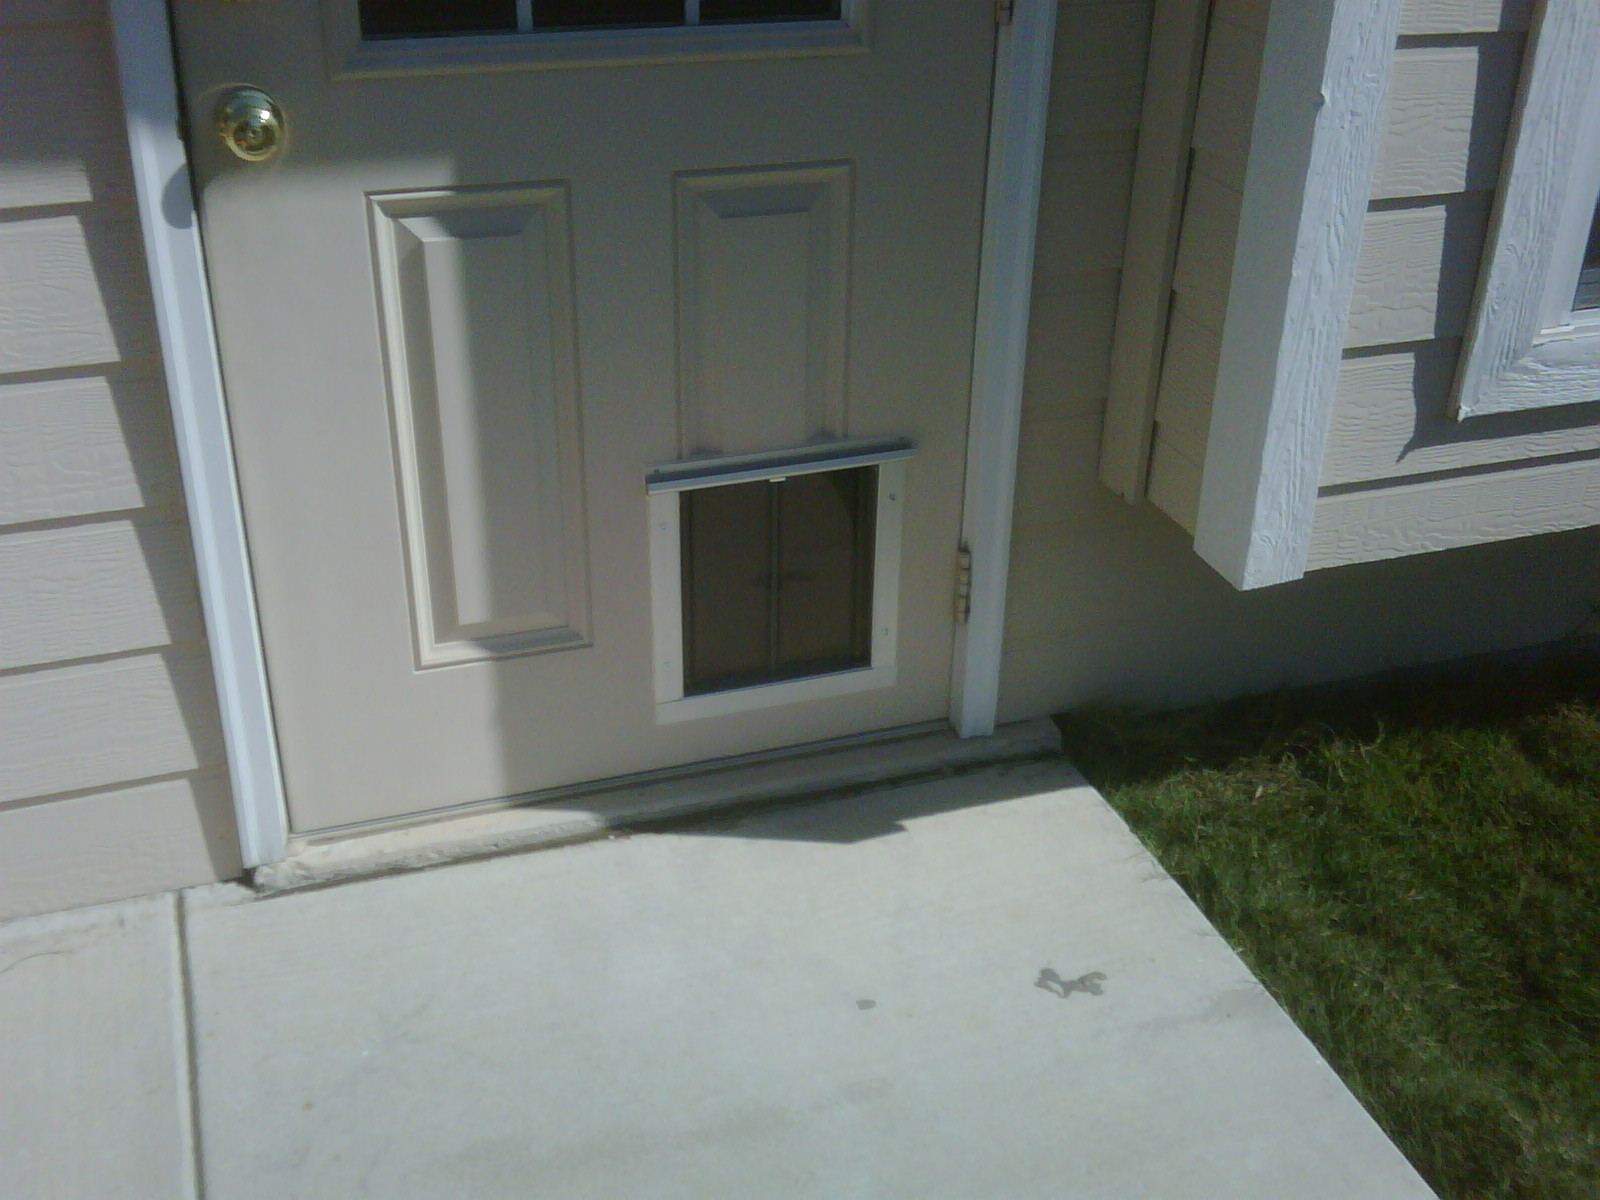 San antonio dog door in standard doors installation gallery for Door installation